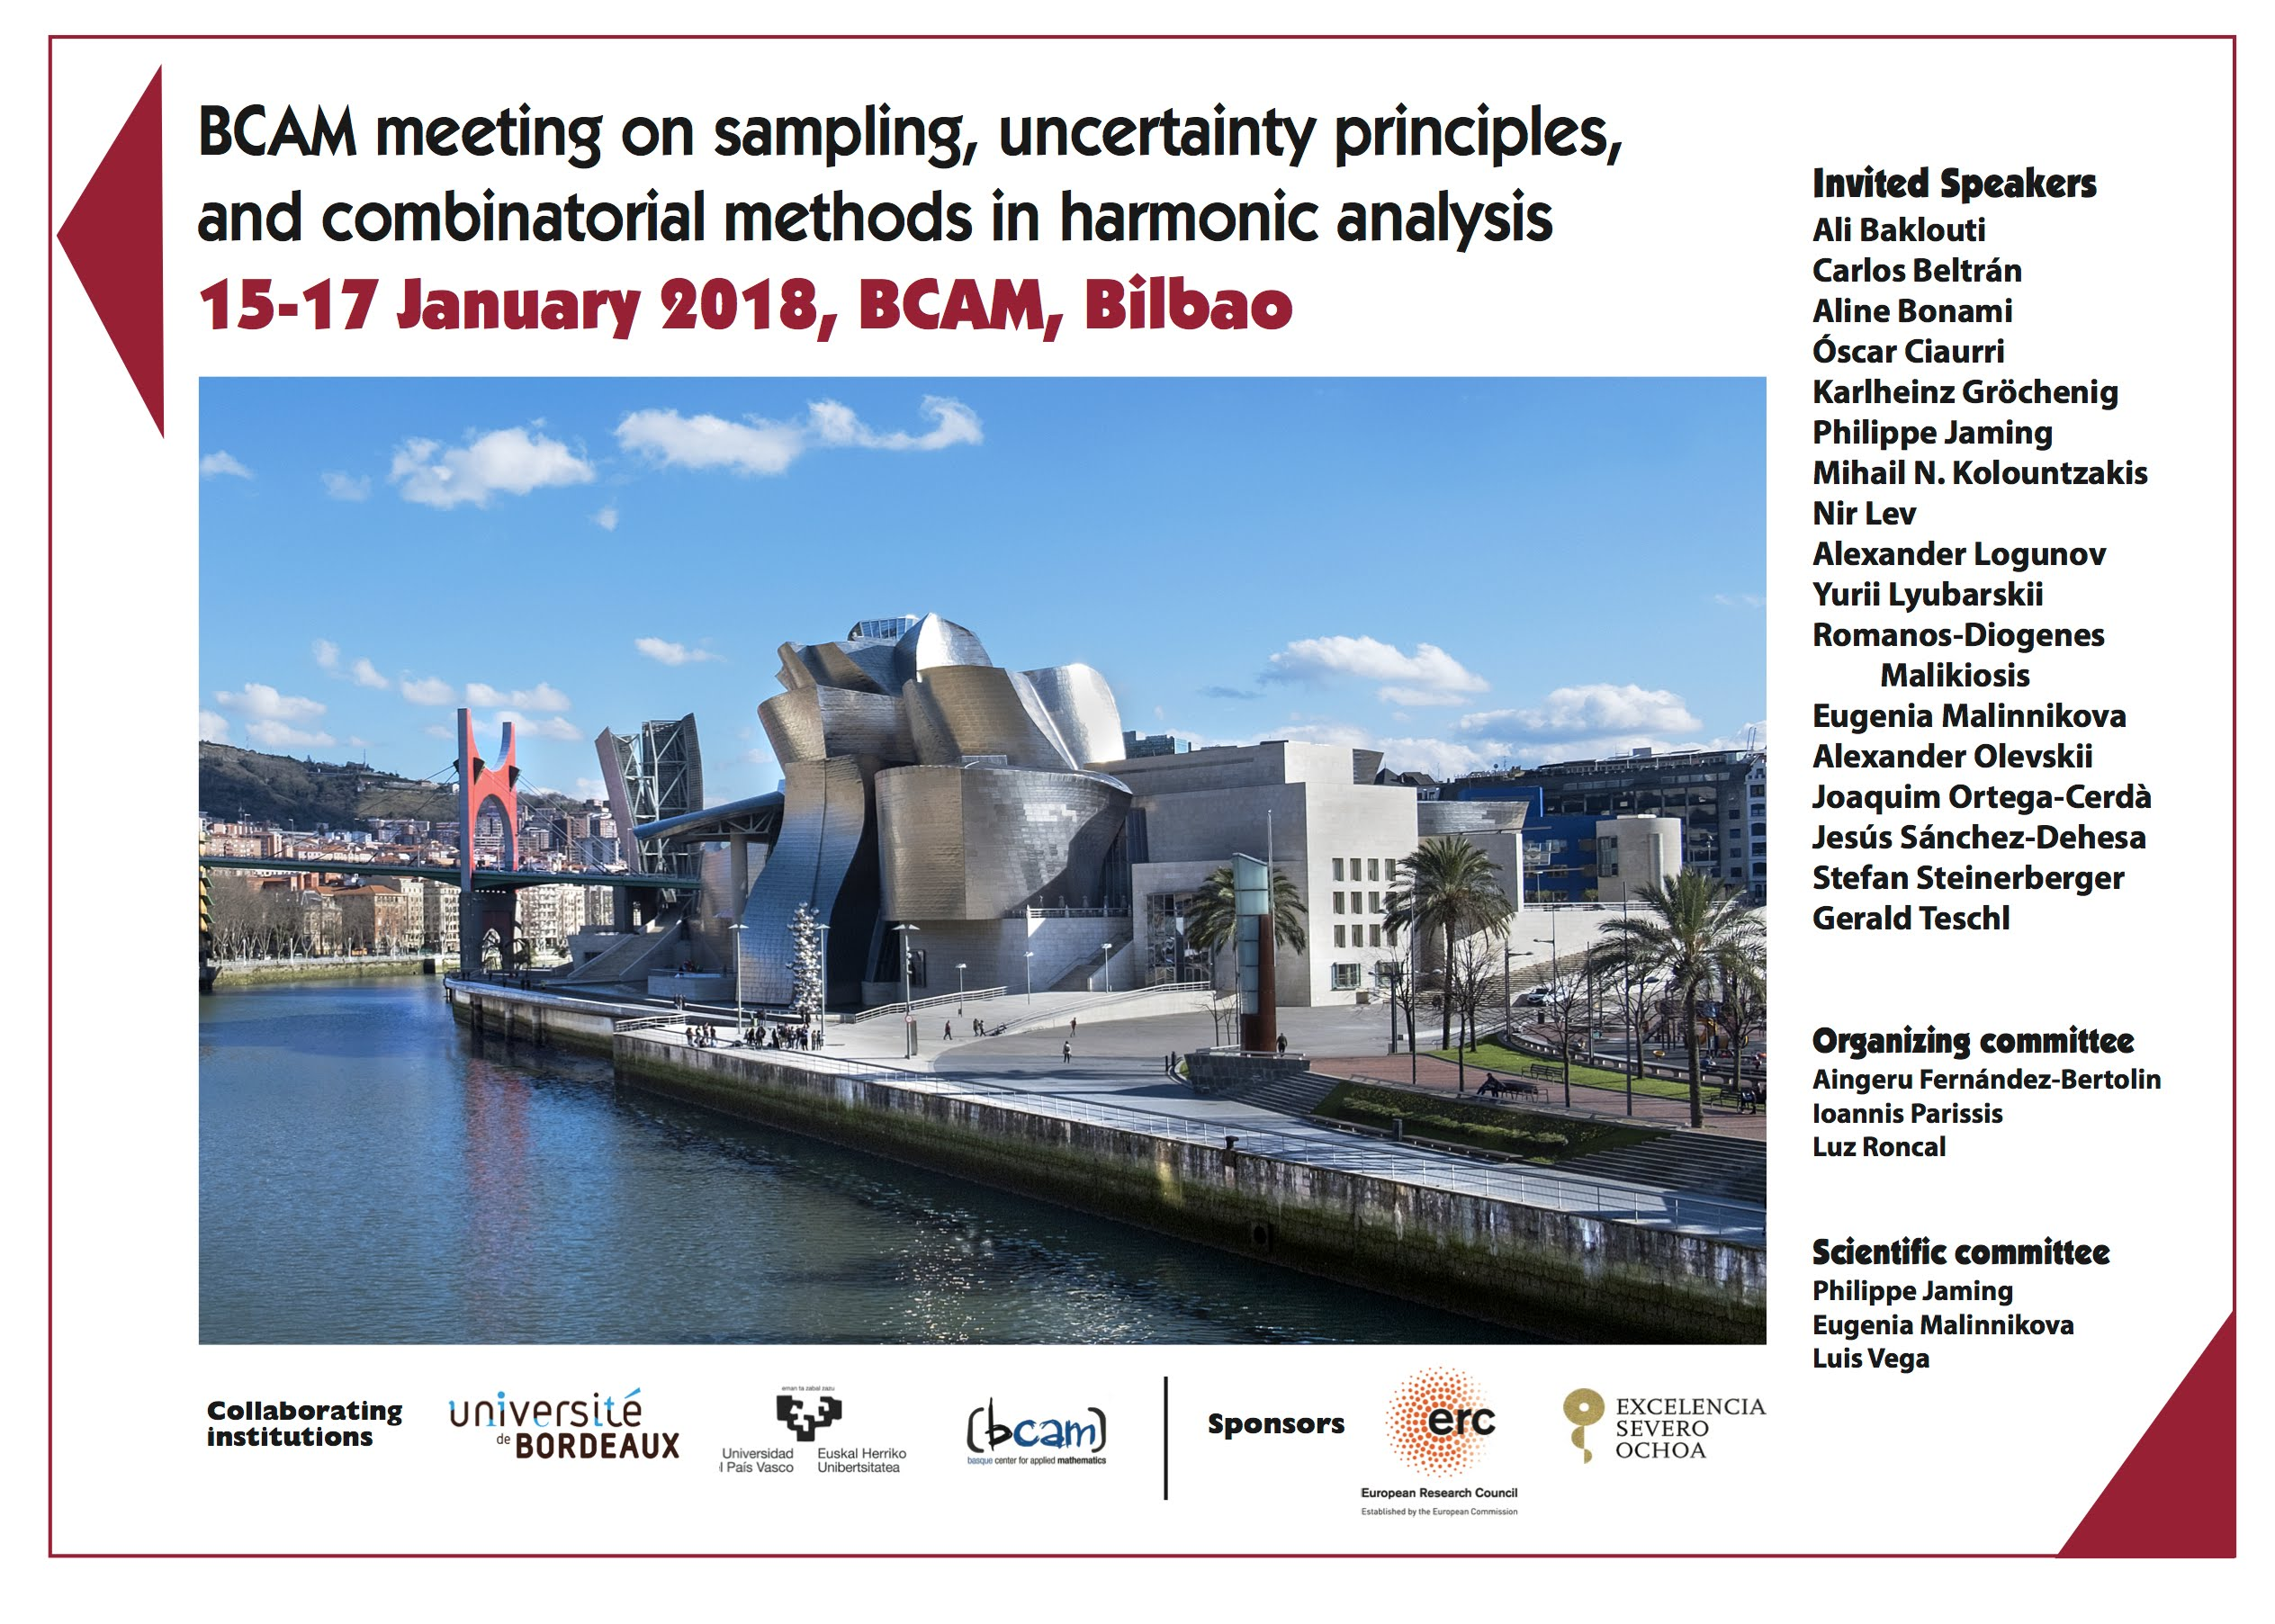 BCAM meeting on sampling, uncertainty principles, and